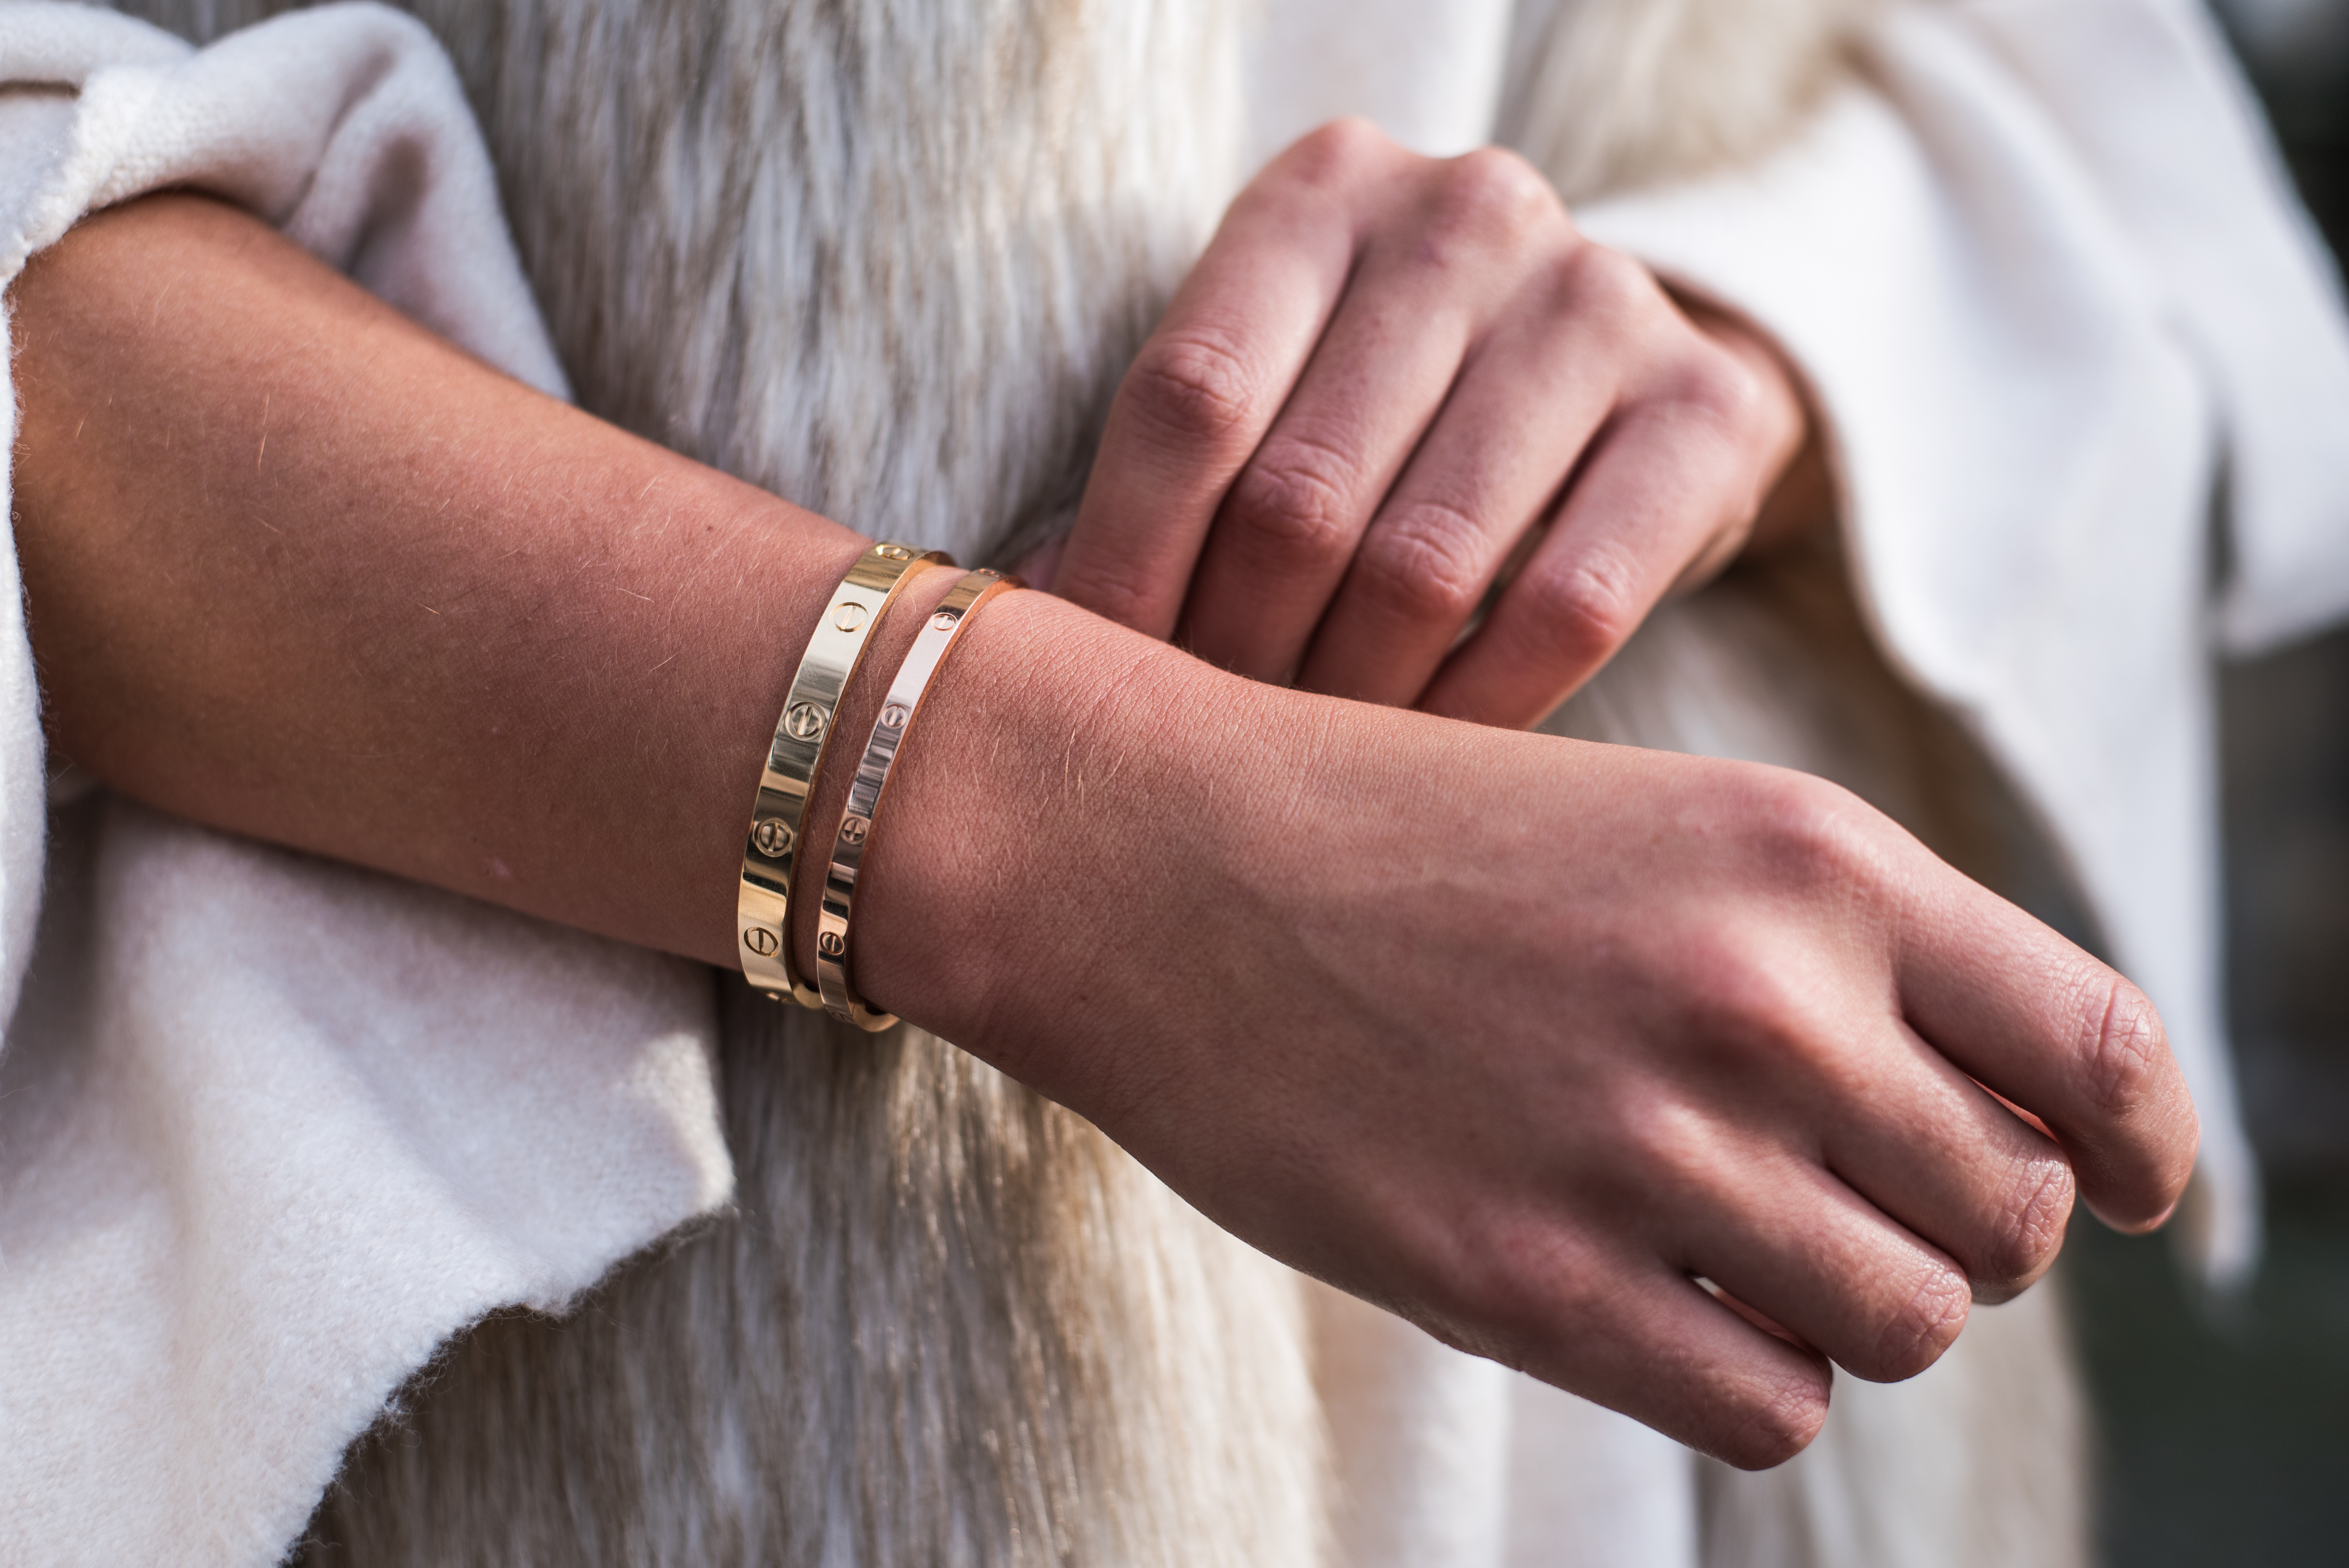 cartier-love-bracelet-arm-candy-blogger-streetstyle-gold-rosegold-fashiioncarpet